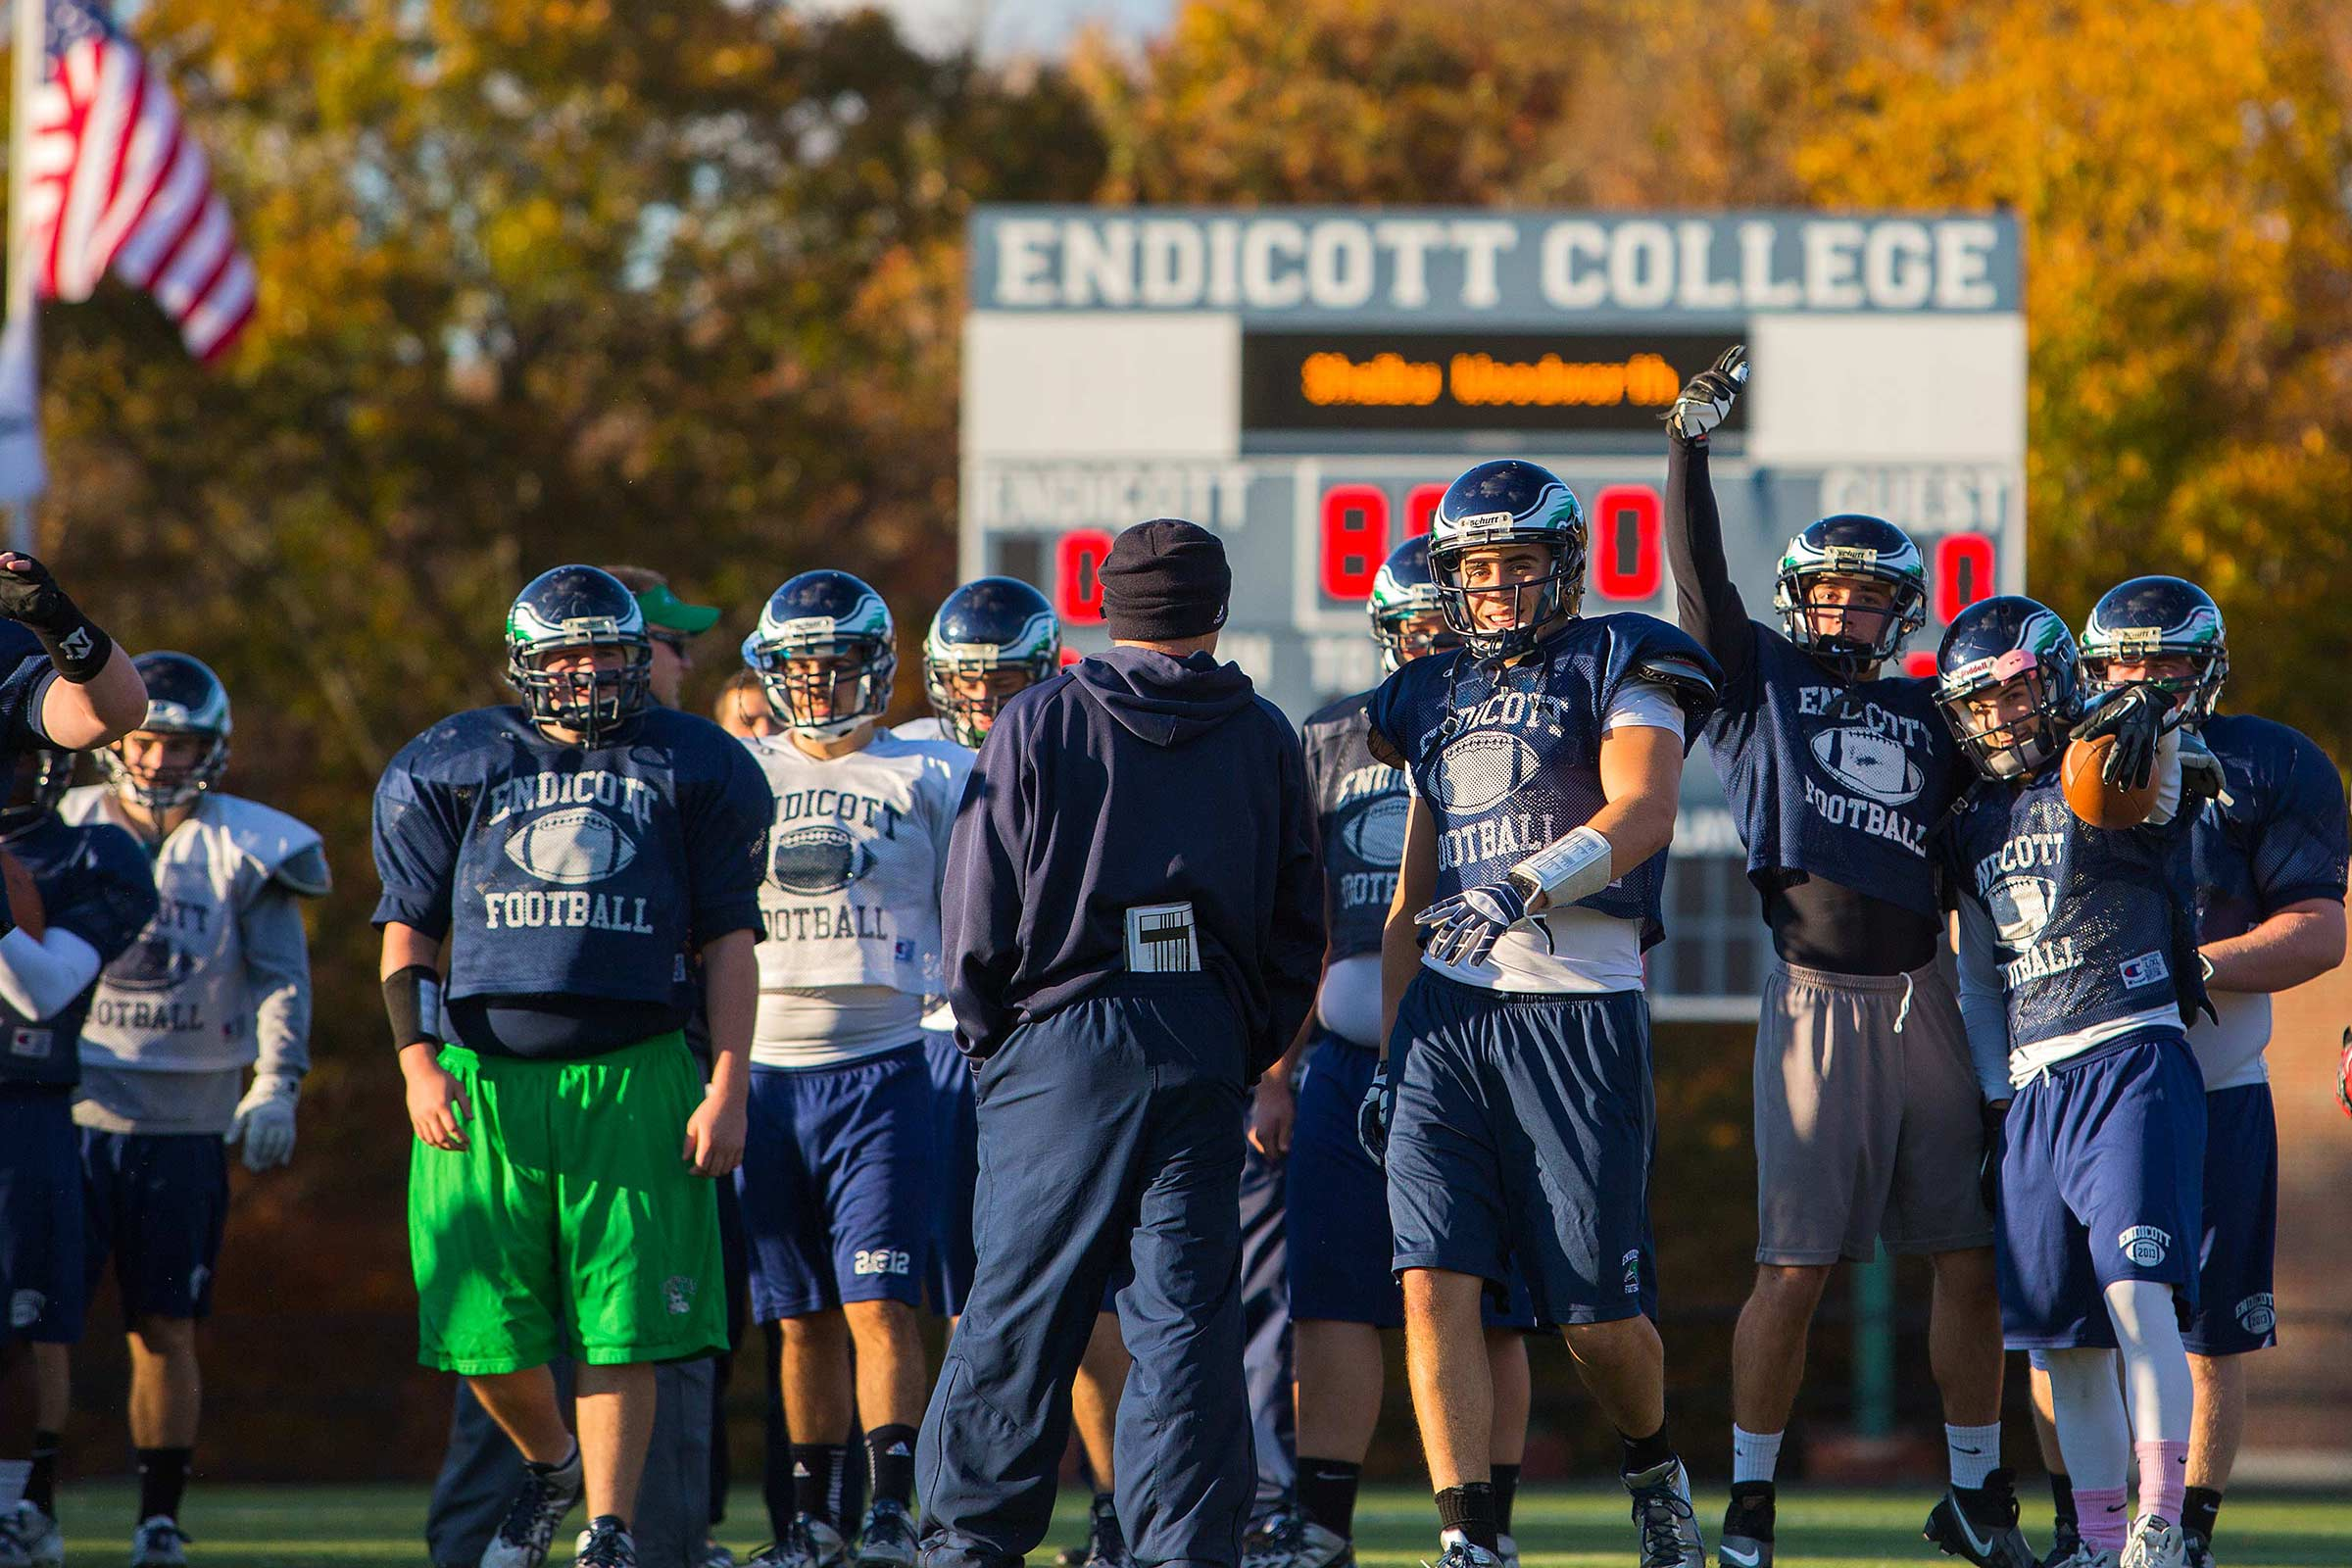 Endicott College, Beverly, MA